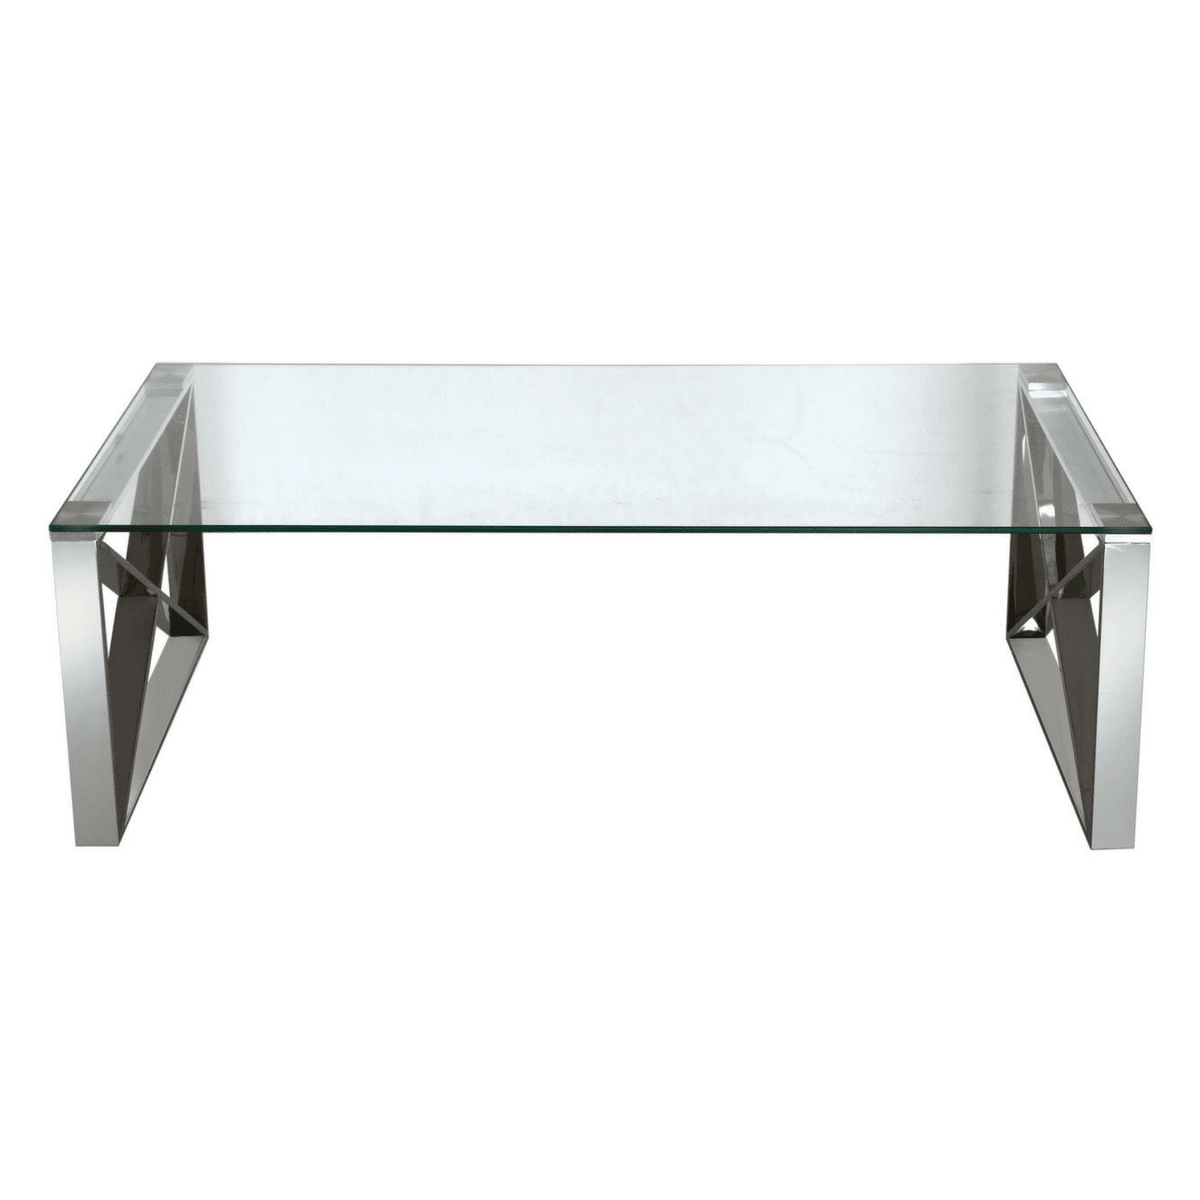 Zenith Stainless Steel Coffee Table With A Clear Glass Top